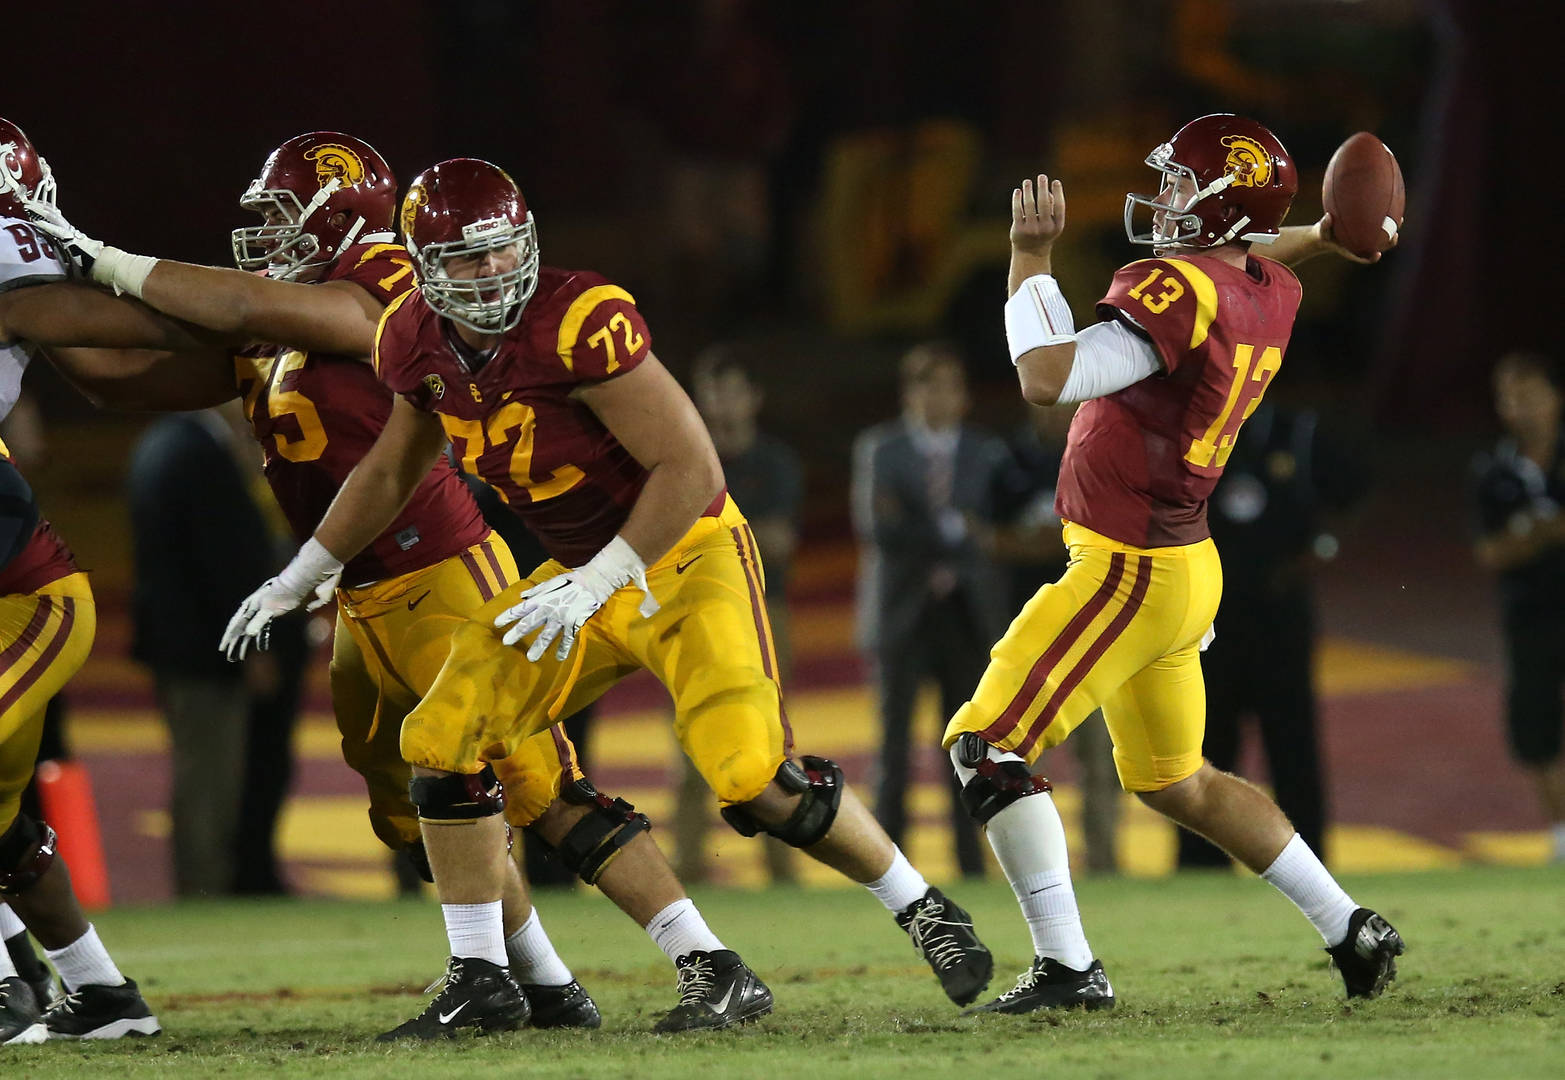 Max Tuerk, USC, Chargers